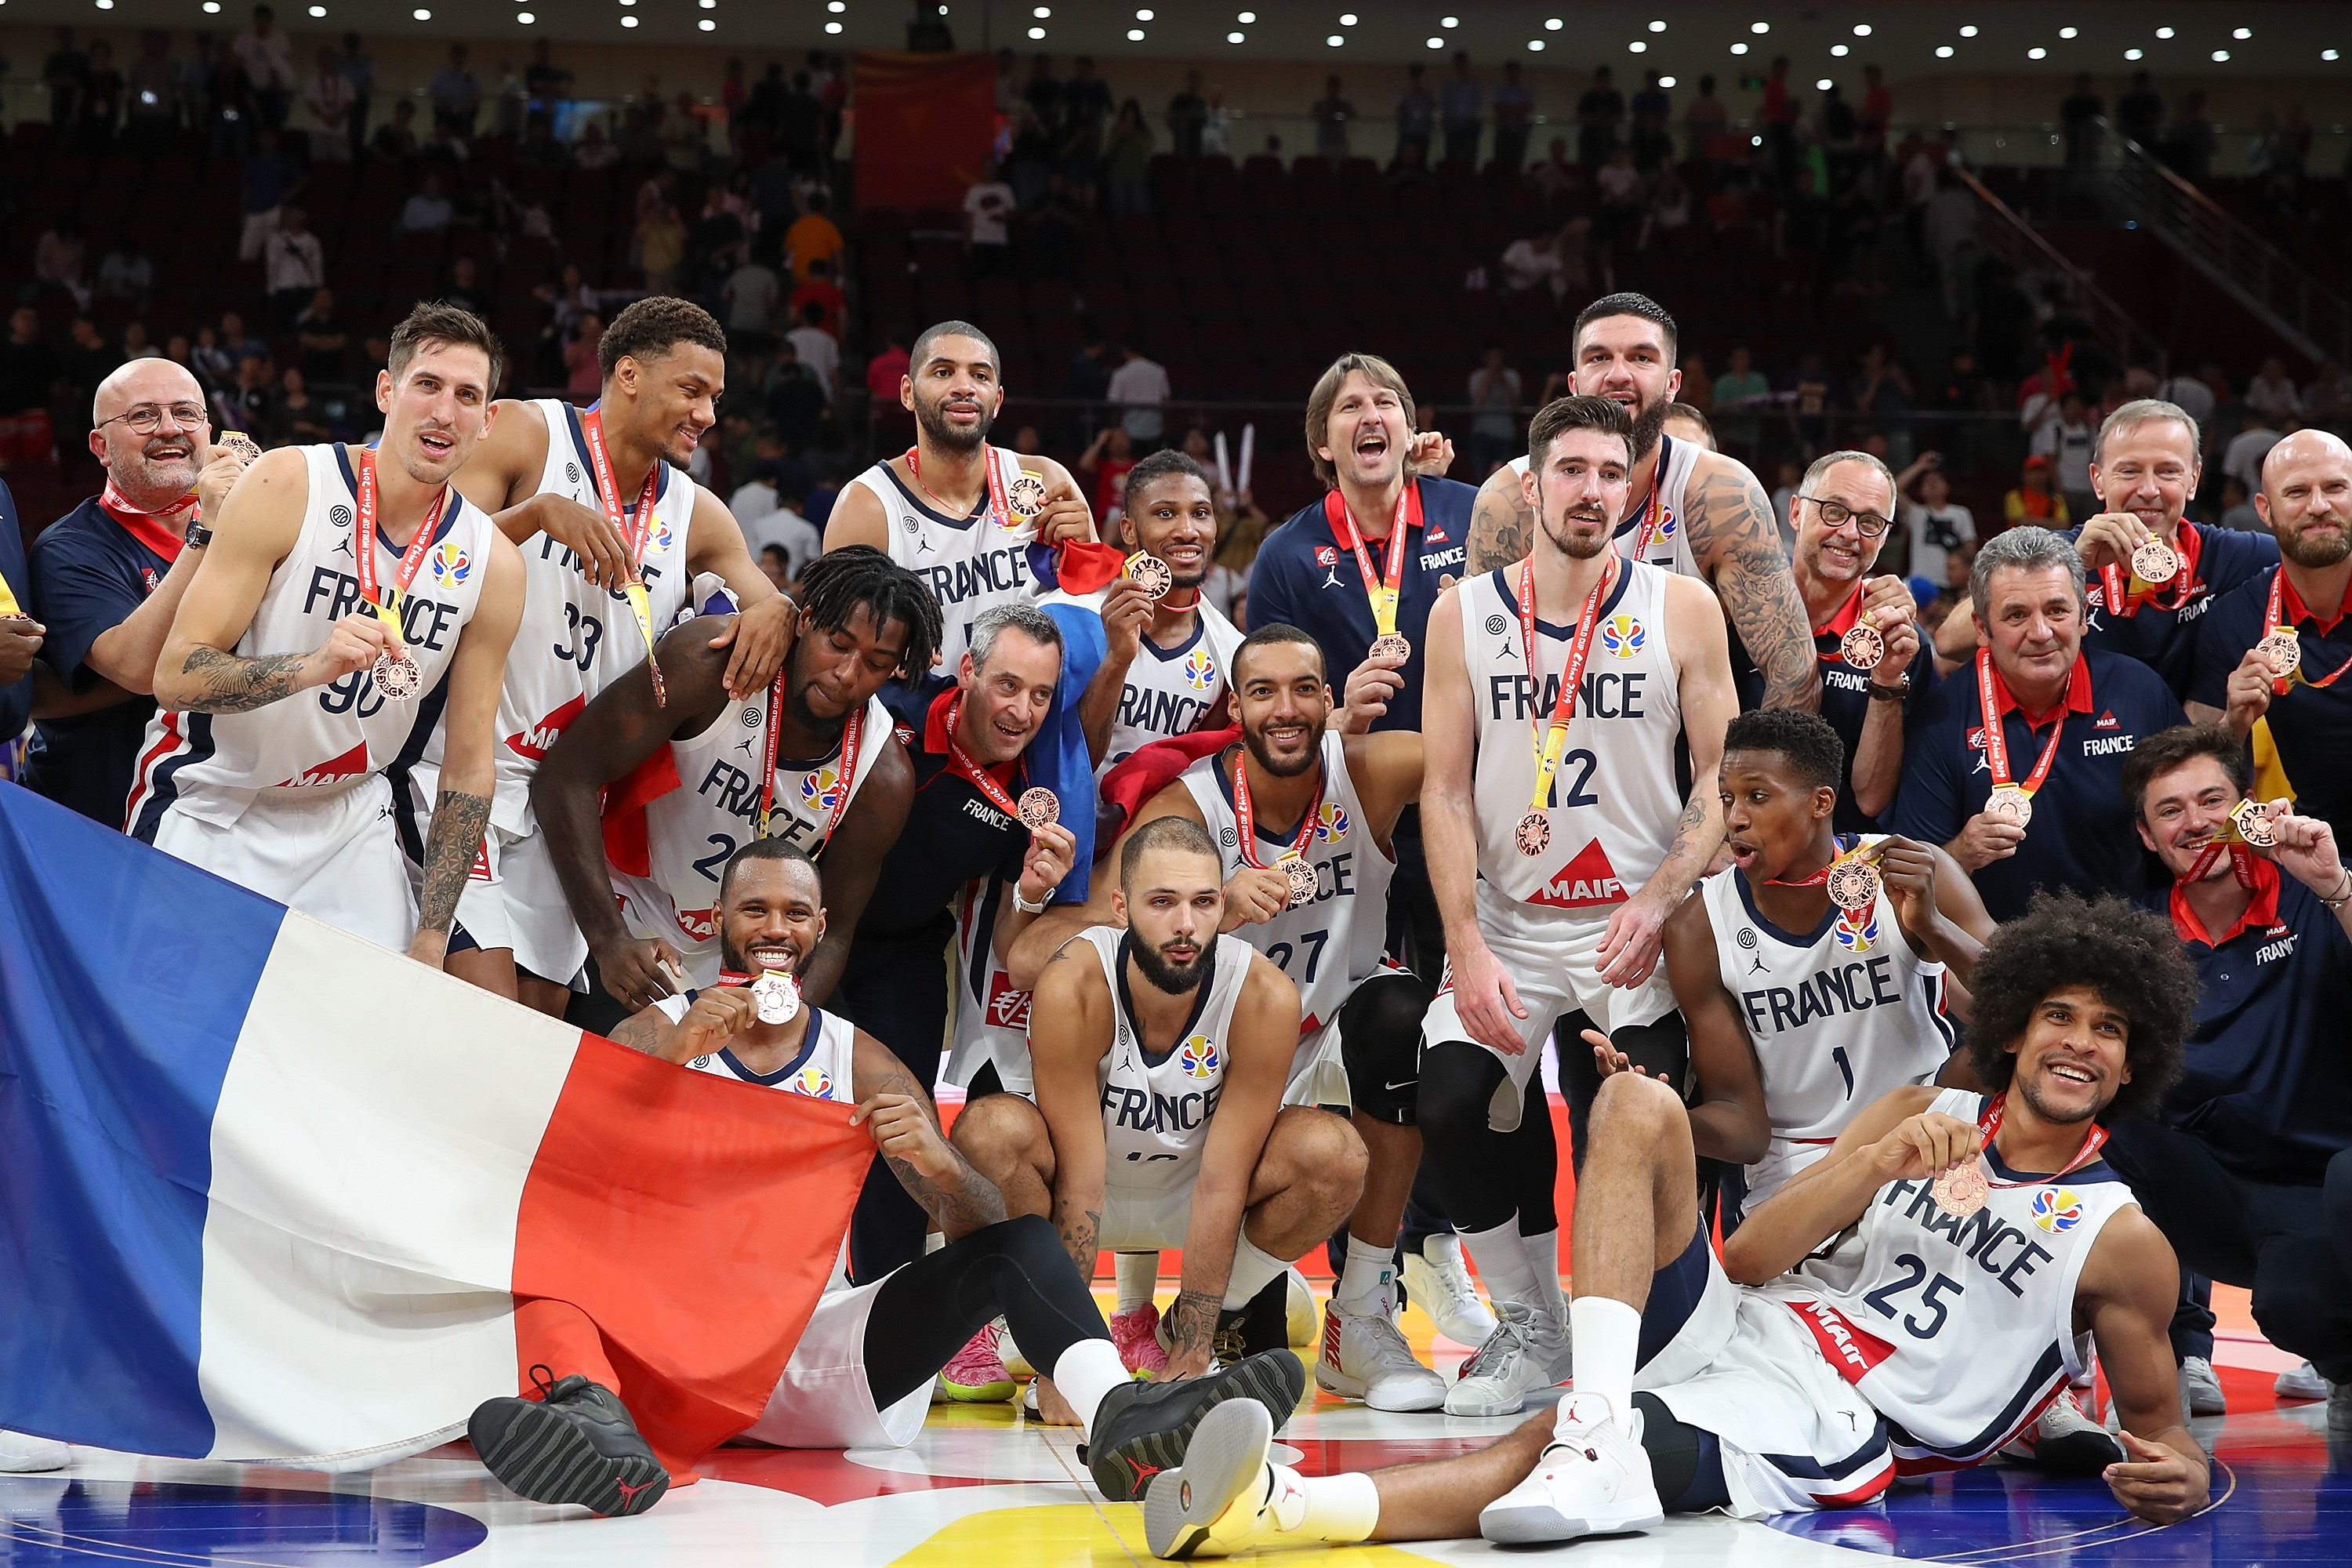 FIBA Basketball World Cup: France takes bronze medal after beating Australia